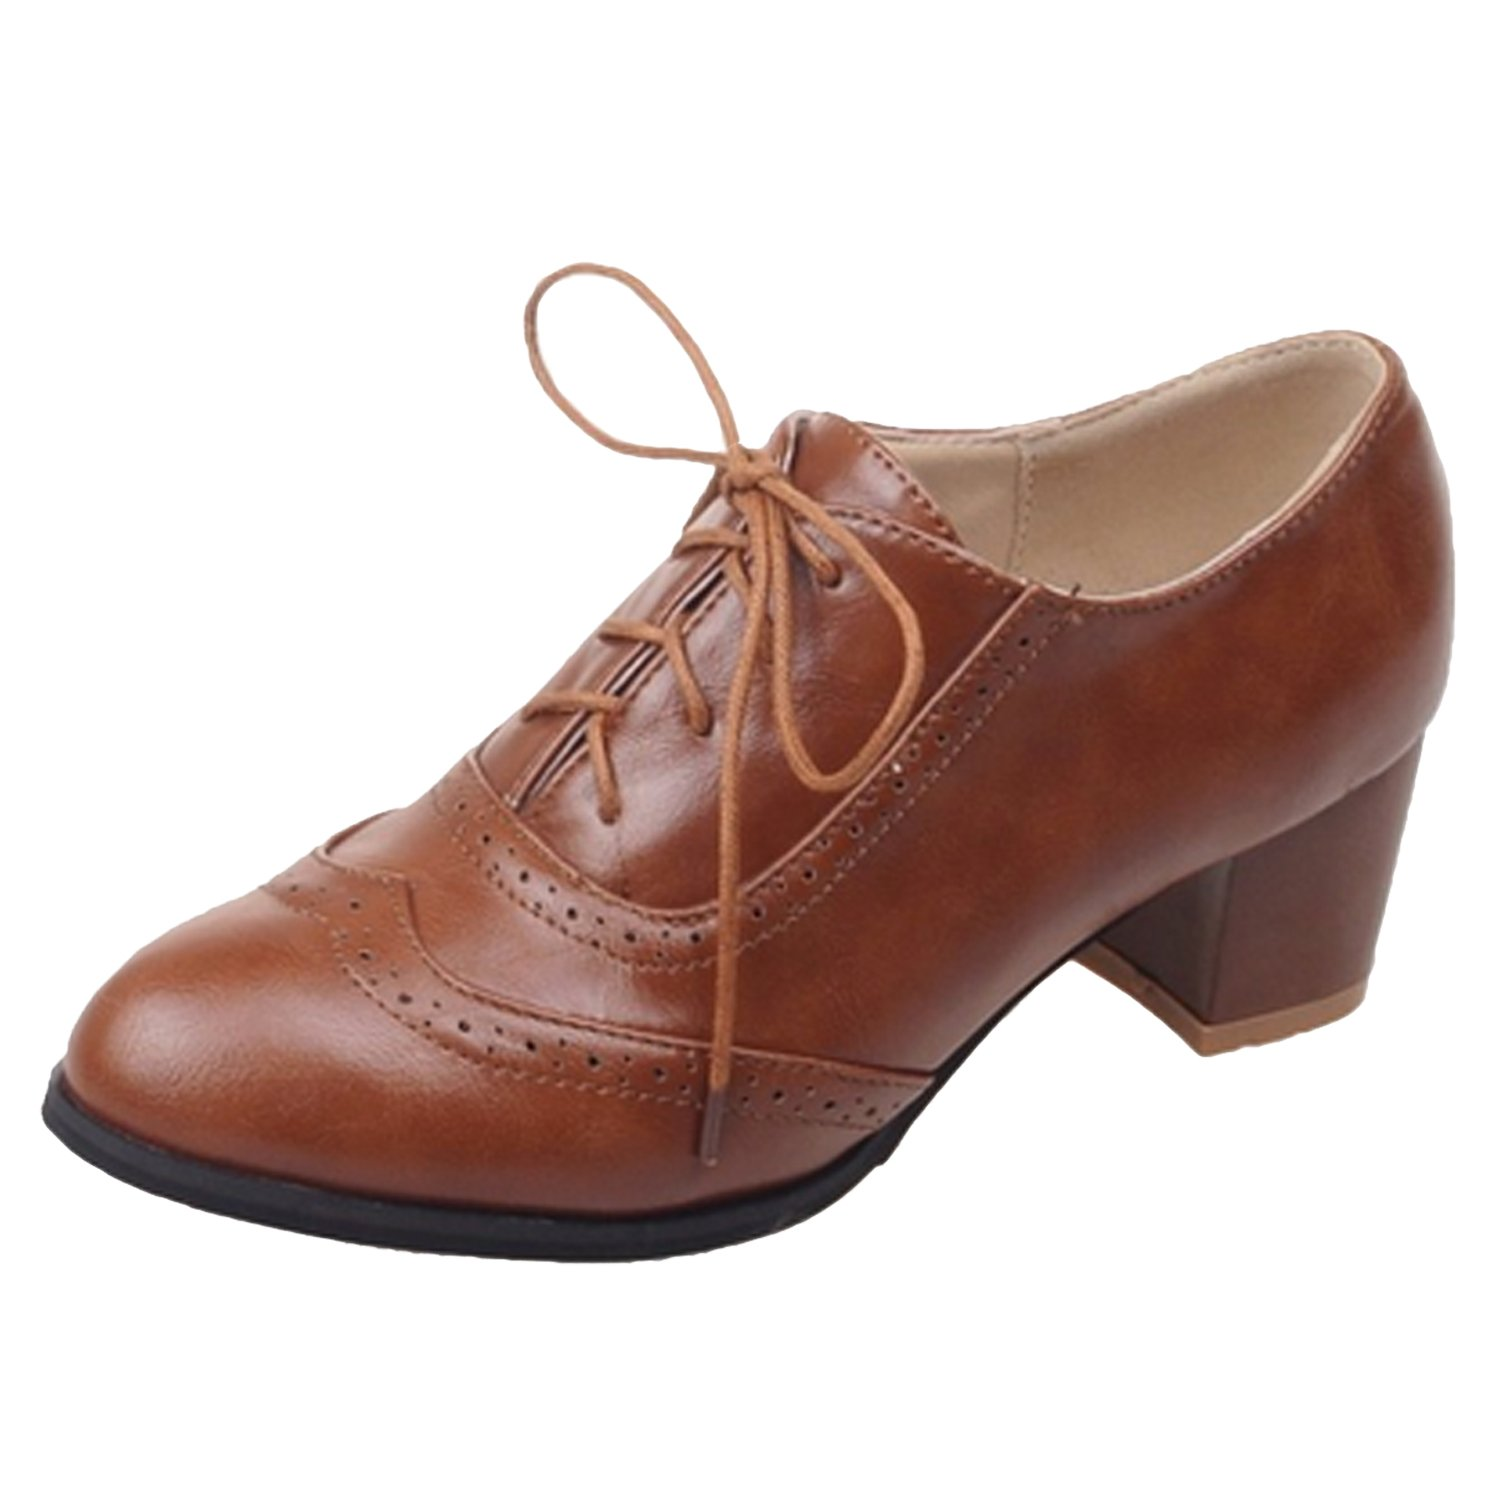 Vintage 1920s Shoe Styles Womens Heel Oxfords �22.99 AT vintagedancer.com